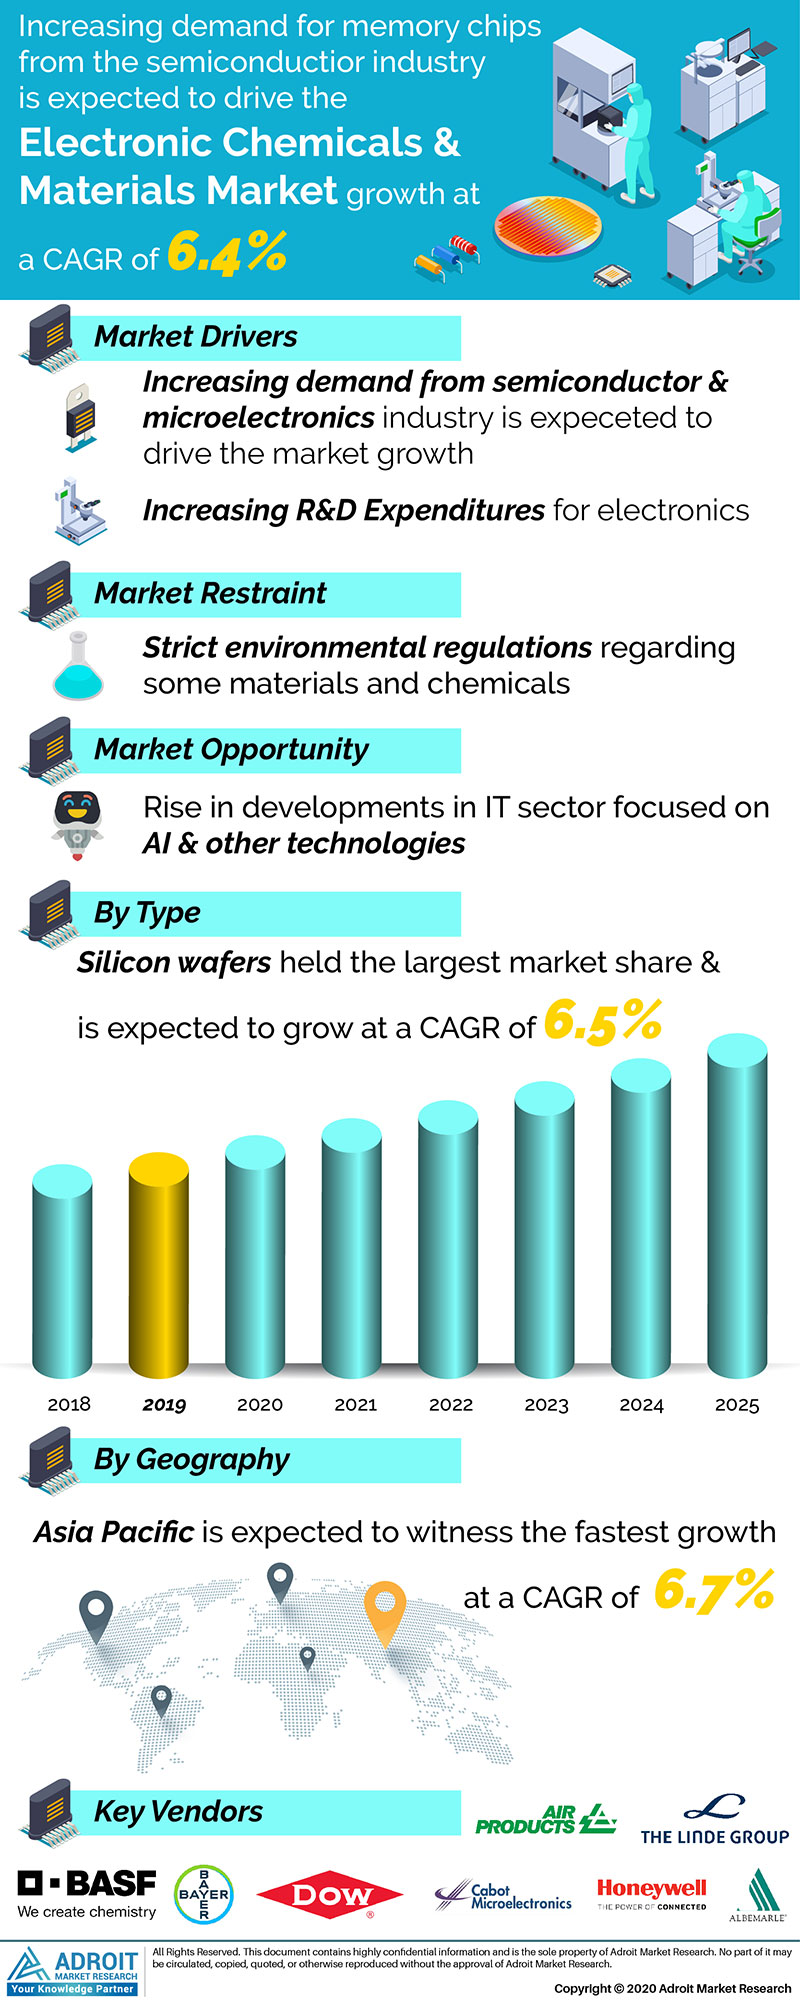 Electronic Chemicals And Materials Market Size 2017 By Application, Product, Region and Forecast 2019 to 2025